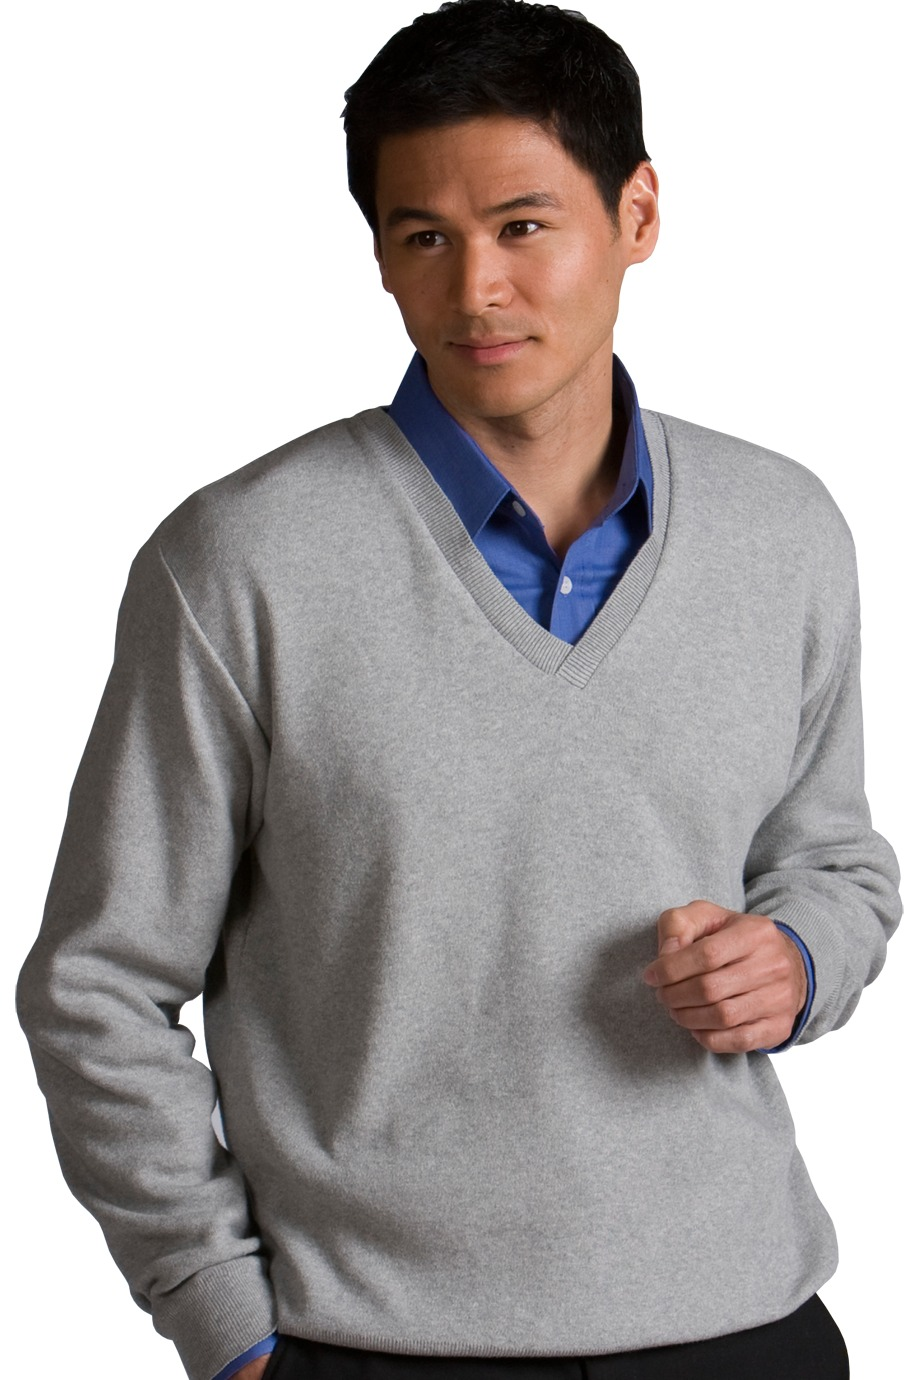 Men 39 s sweaters and cardigans for Sweater over shirt men